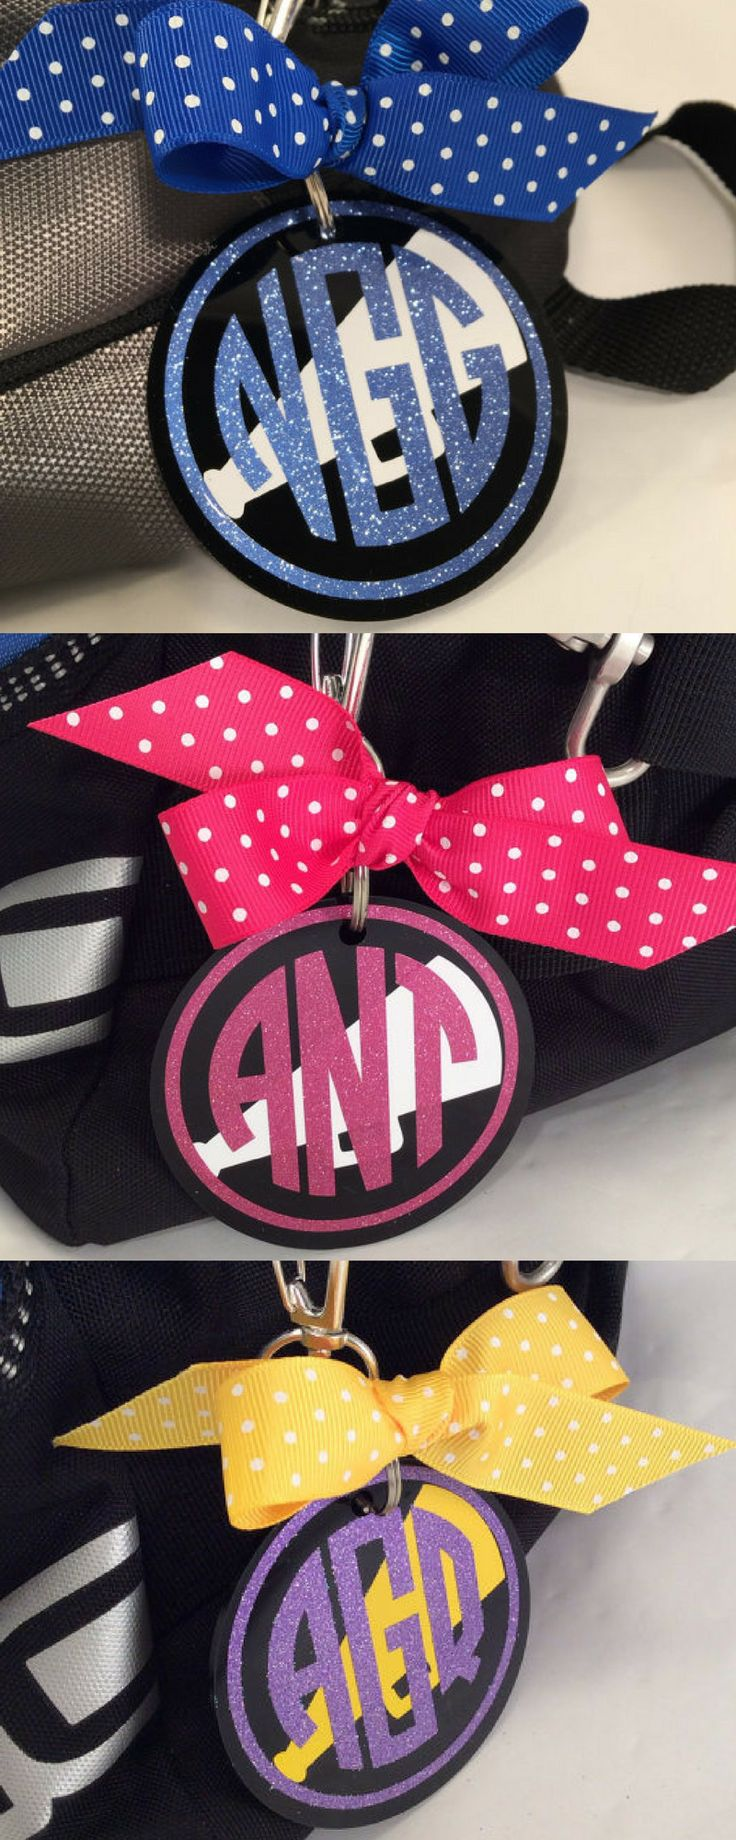 $6.50. Cheer Monogram Bag Tag on Black Acrylic, Personalized, Accessories, Cheerleading Decor, Cheerleading Party, Cheerleading Bag Tag #cheerleading #ad